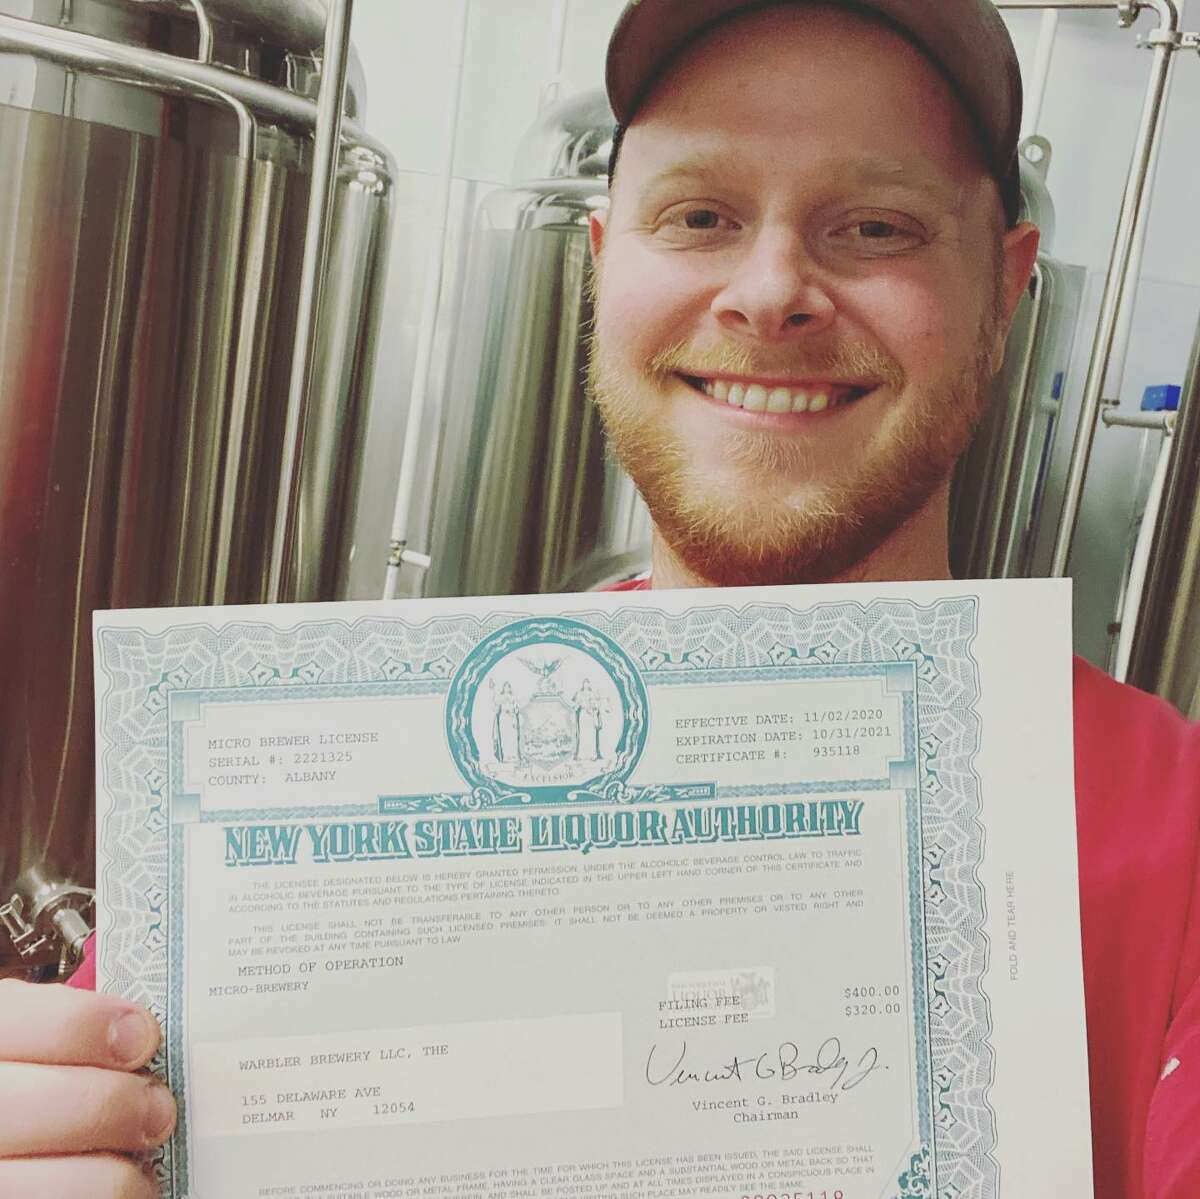 Delmar native Chris Schell is opening a new micro-brewery on Delaware Avenue across from the Hannaford supermarket.